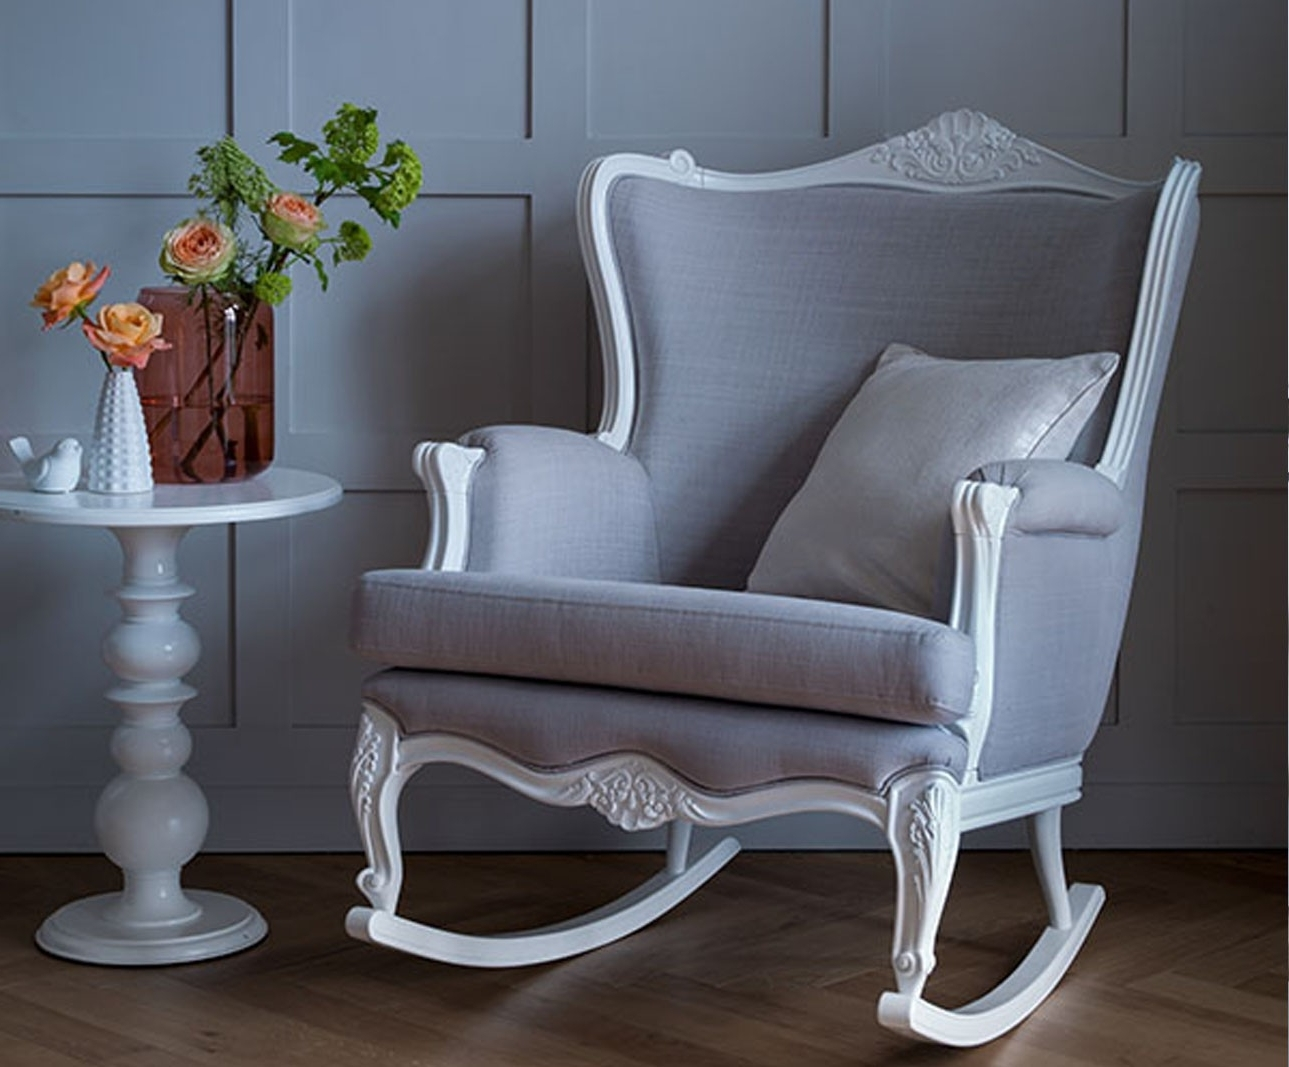 Most Recent Rocking Chairs For Nursing With Luxury Nursing Rocking Chair — All Modern Rocking Chairs : Good And (View 5 of 15)